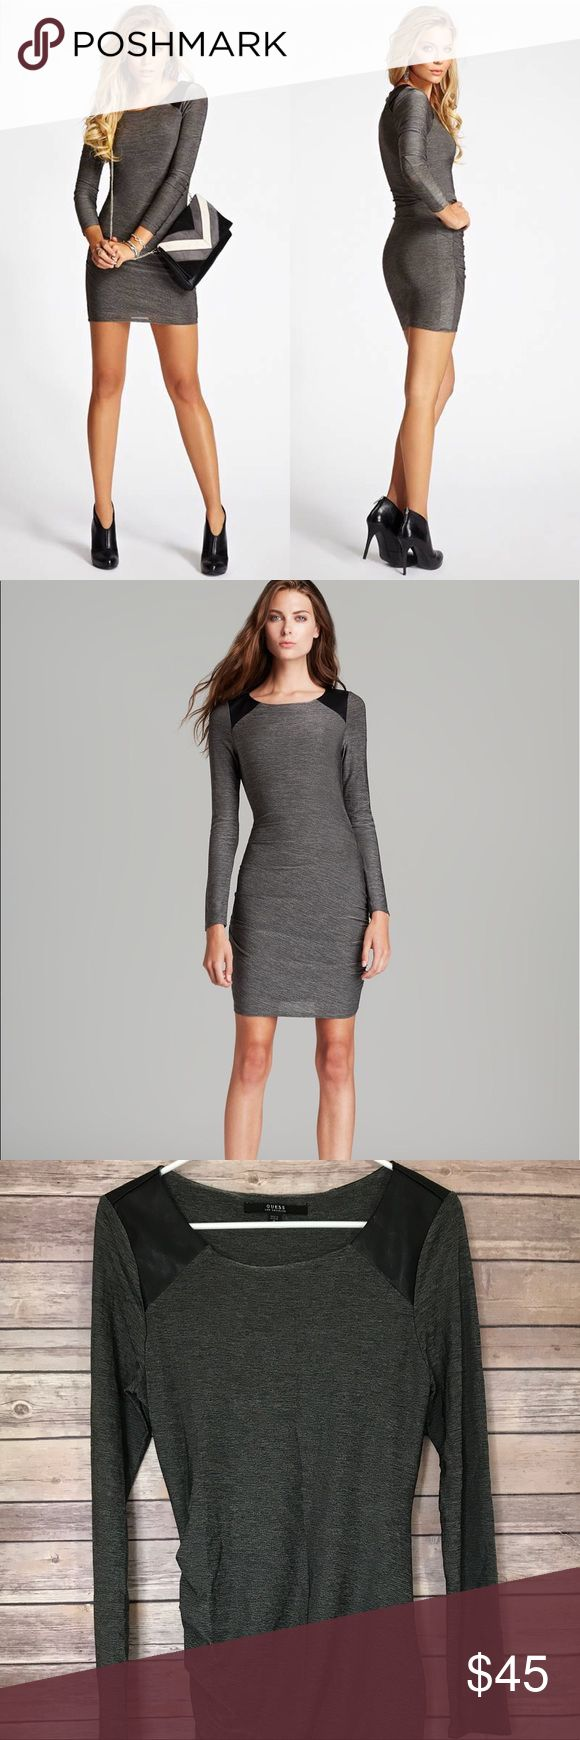 "Guess Gray Bodycon tight dress long sleeves Measurements taken laying flat: Armpit to armpit-15.5"" Length-35"" Slinky jersey stretches to show off your sexy curves in this night-out-ready dress. Style it with leather booties to play up the contrast panels and capture a rocker-chic look that won't go unnoticed.   • Stretch jersey dress.Formfitting.  • Marled texture. Faux-leather shoulder panels. Ruched at sides of skirt.  • Slips on. Self lining.  • 56% Rayon Viscose, 35% Polyester, 9%…"